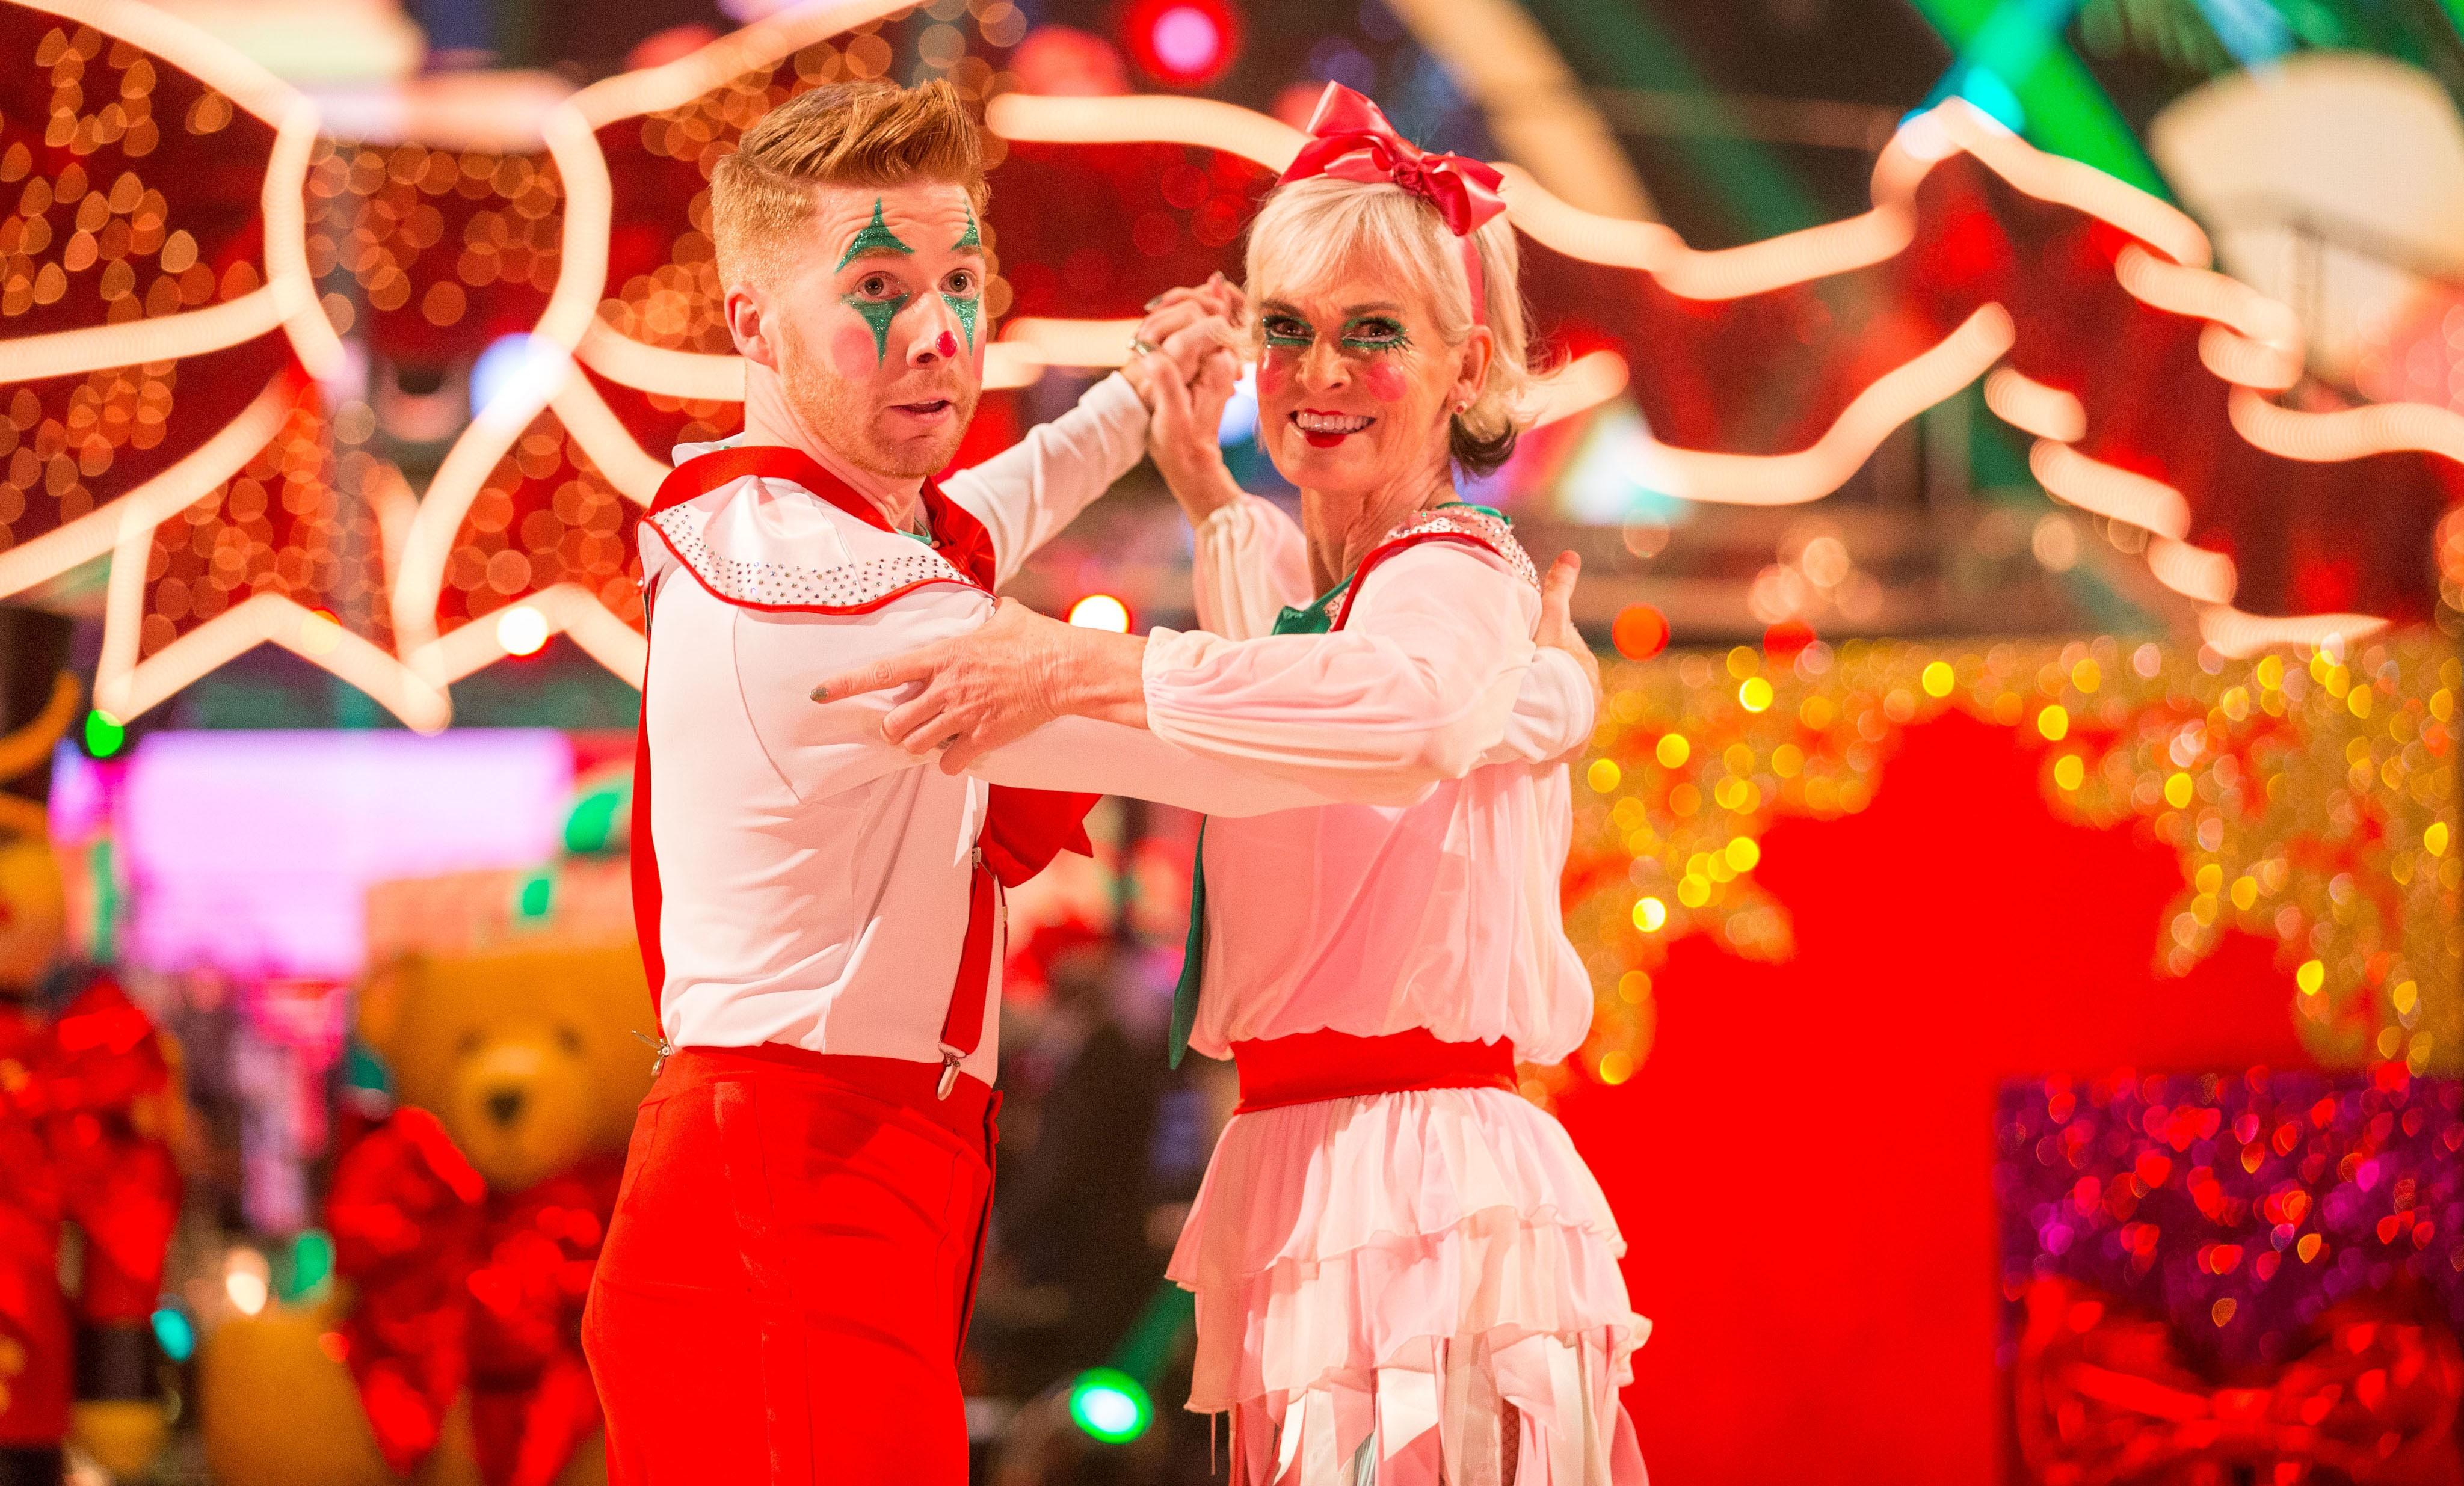 Strictly Come Dancing Christmas Special 2017 - Judy Murray and Neil Jones